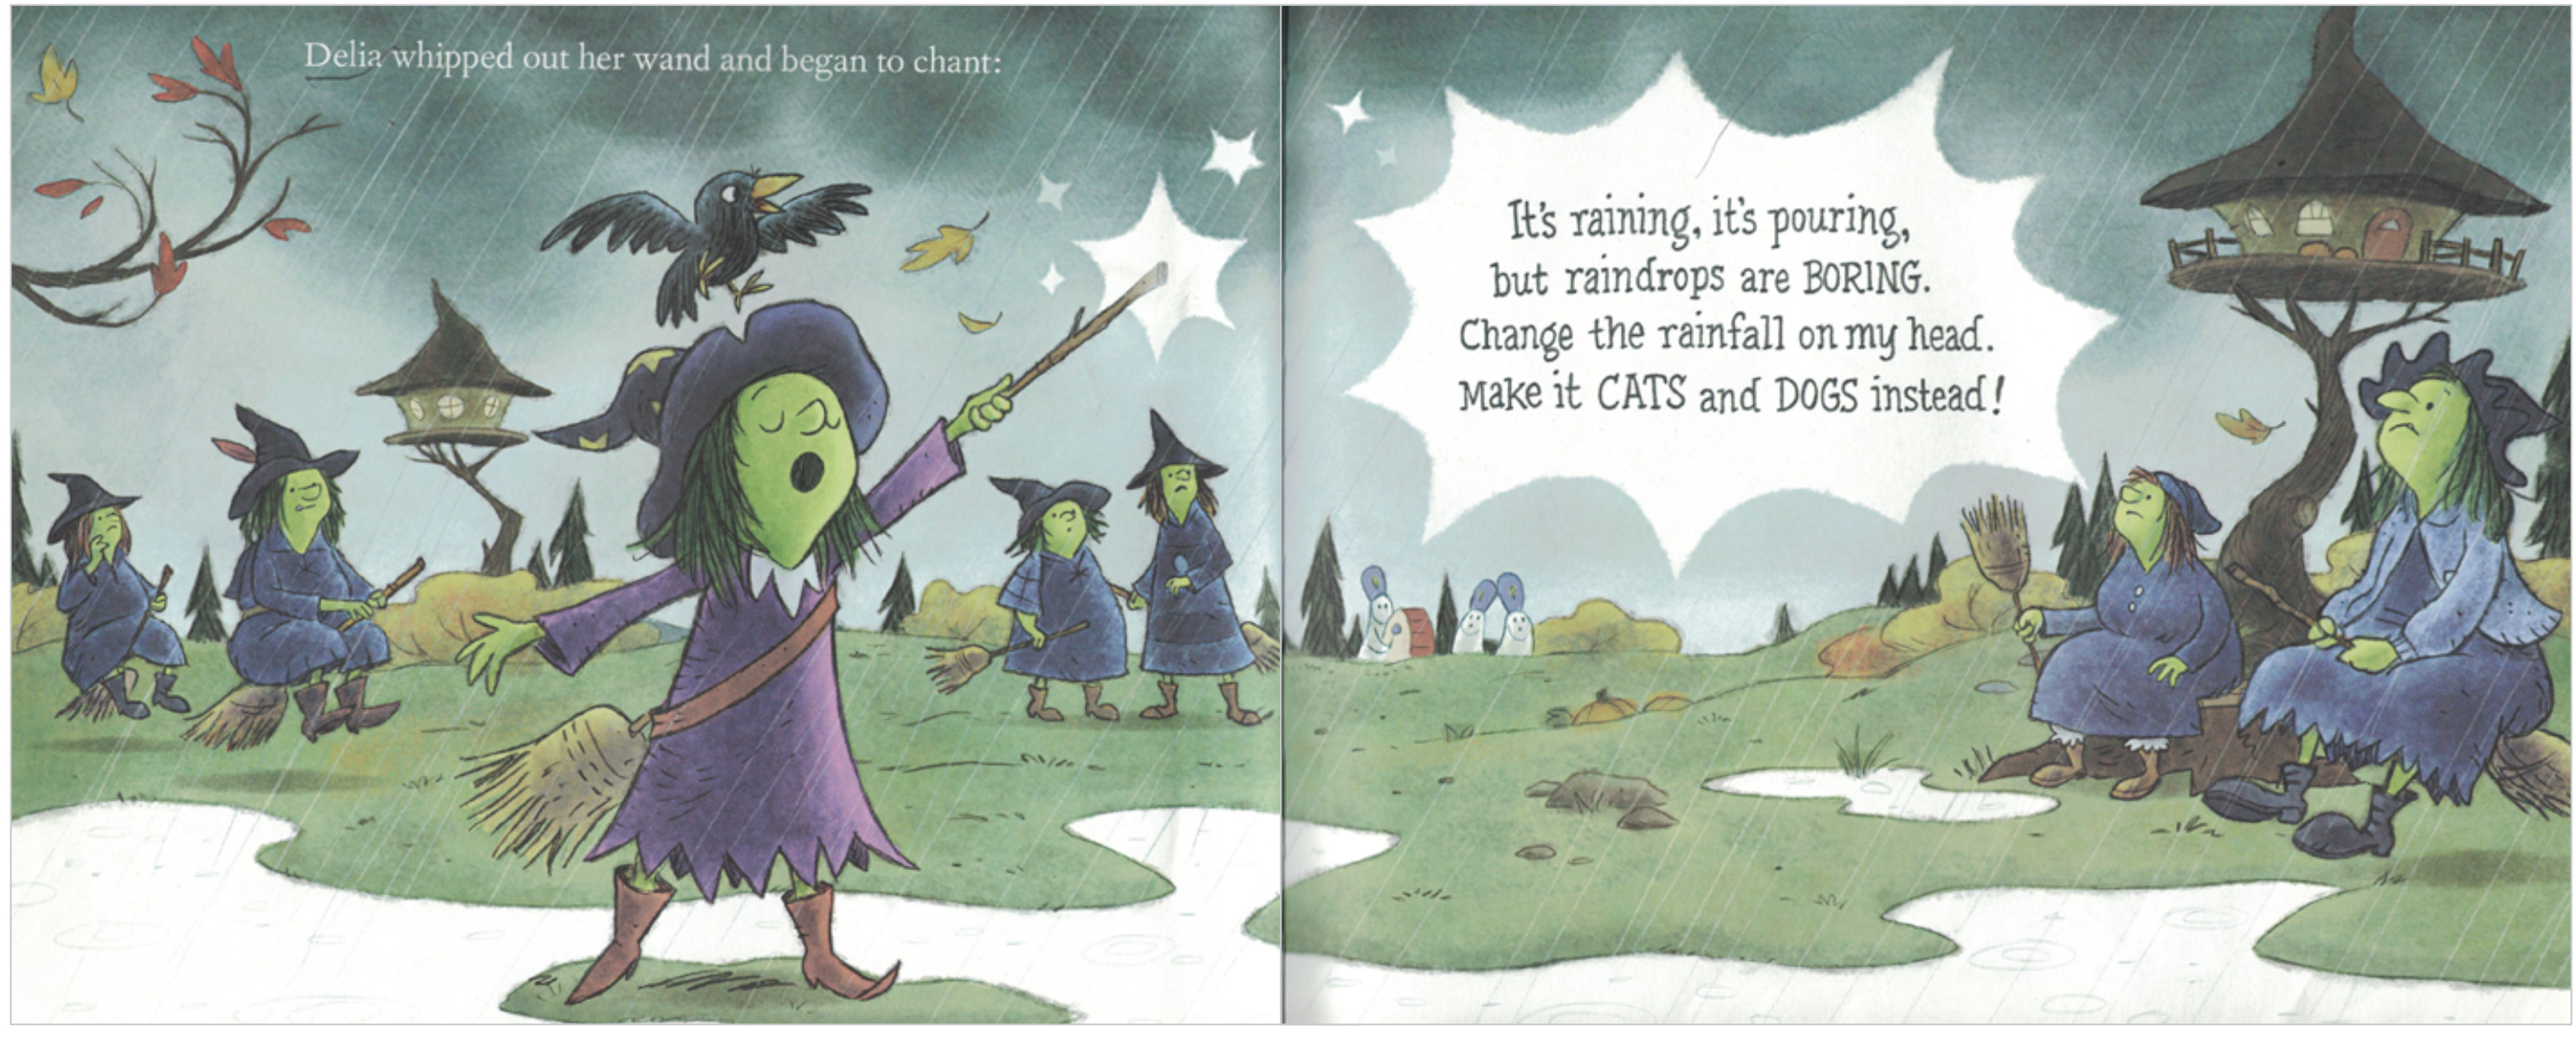 its-raining-bats-and-frogs-interior-3